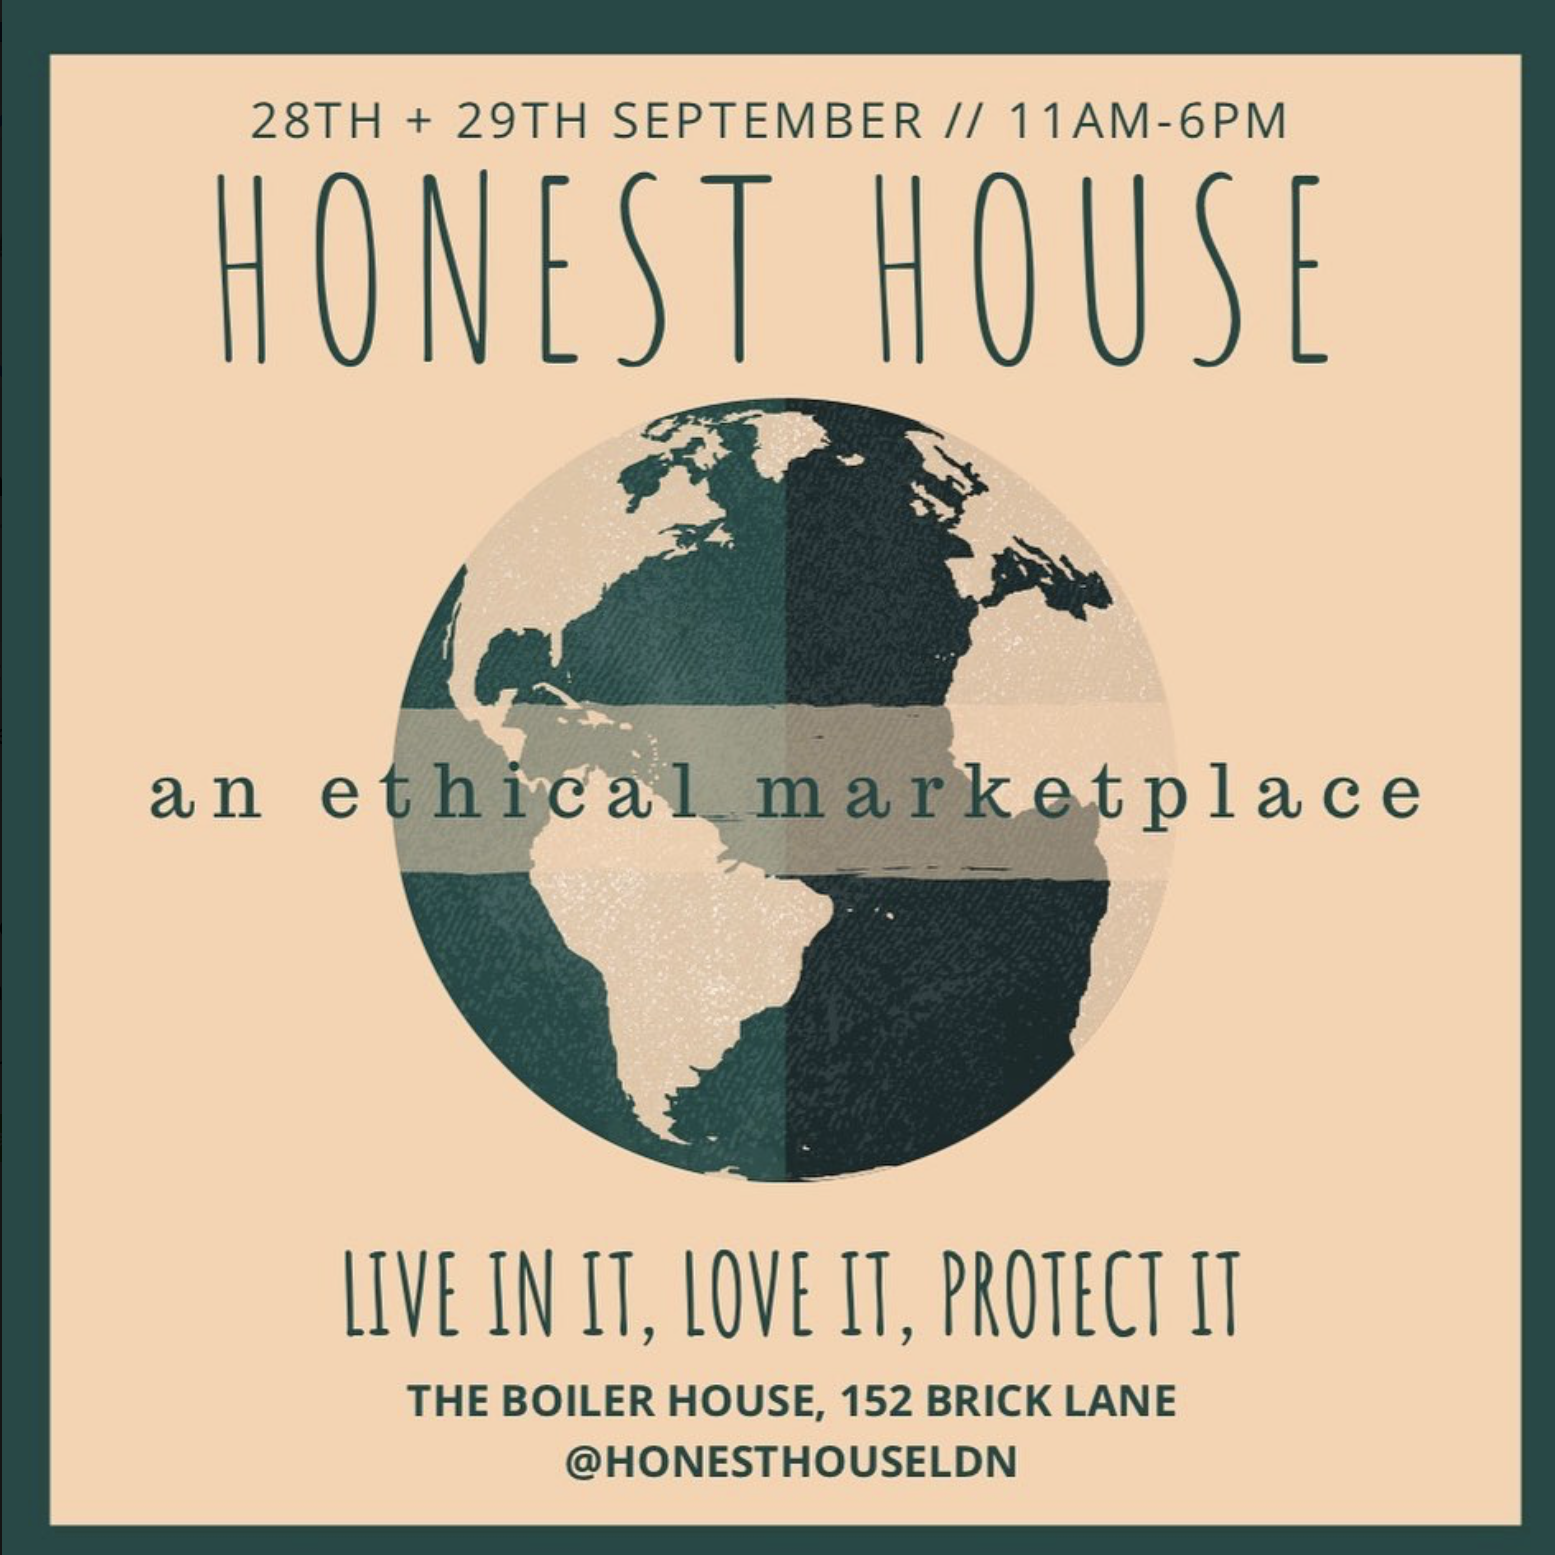 Honest House - an ethical marketplace